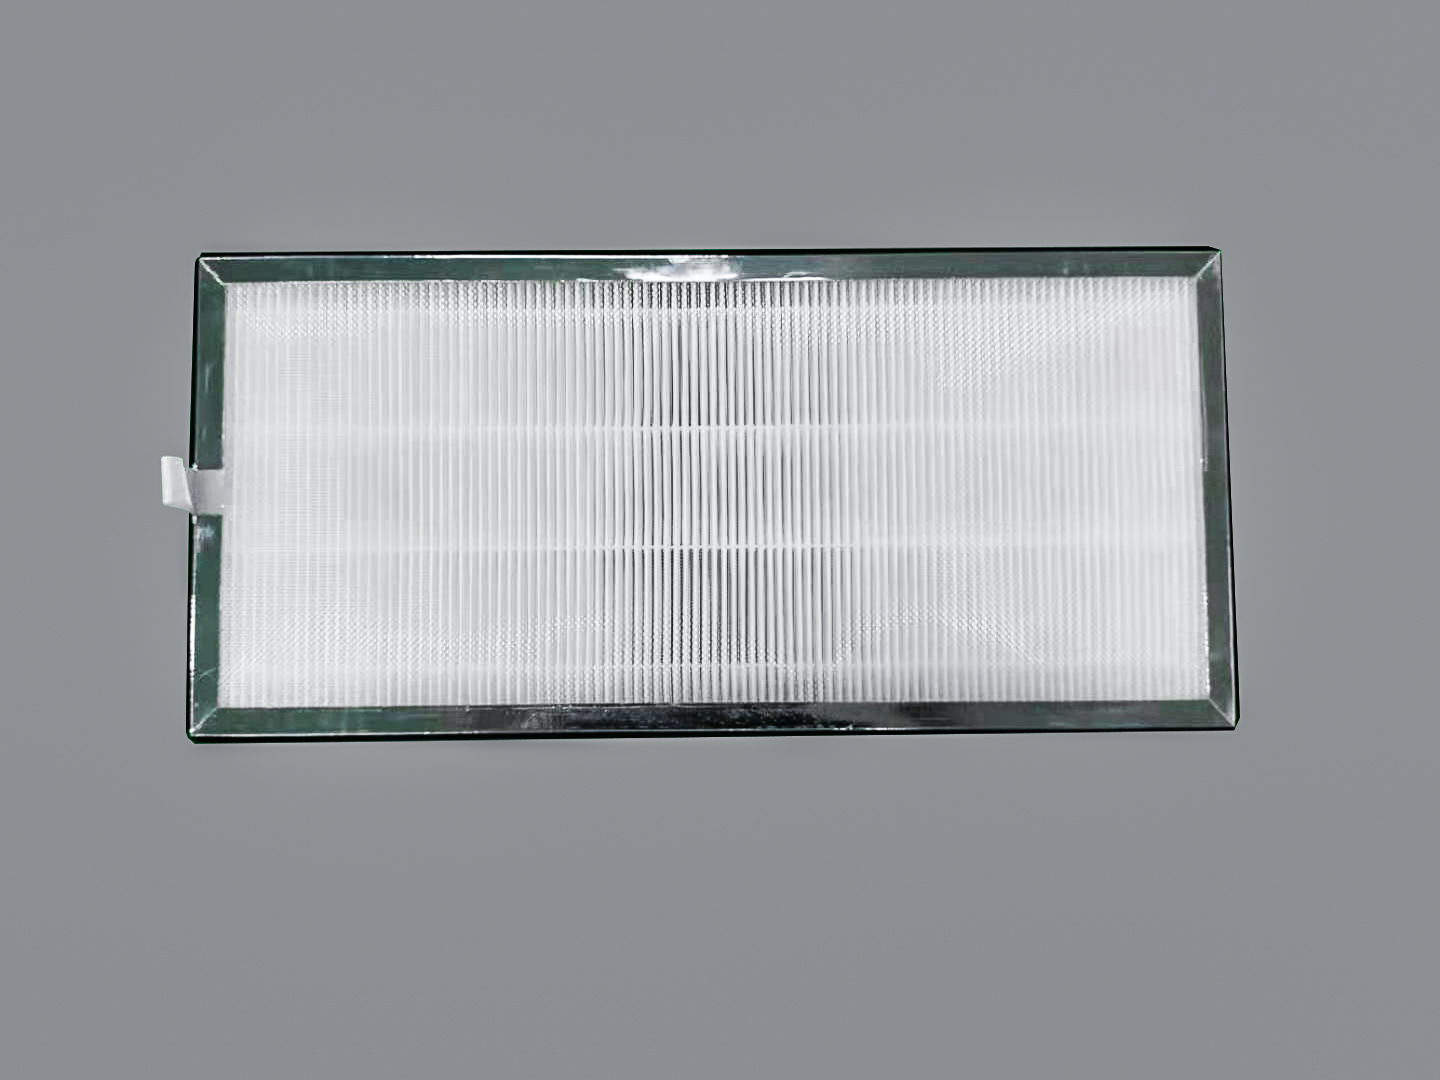 Kit Hepa Filter 0.3 Micron and Carbon Active Purifier Air Generator